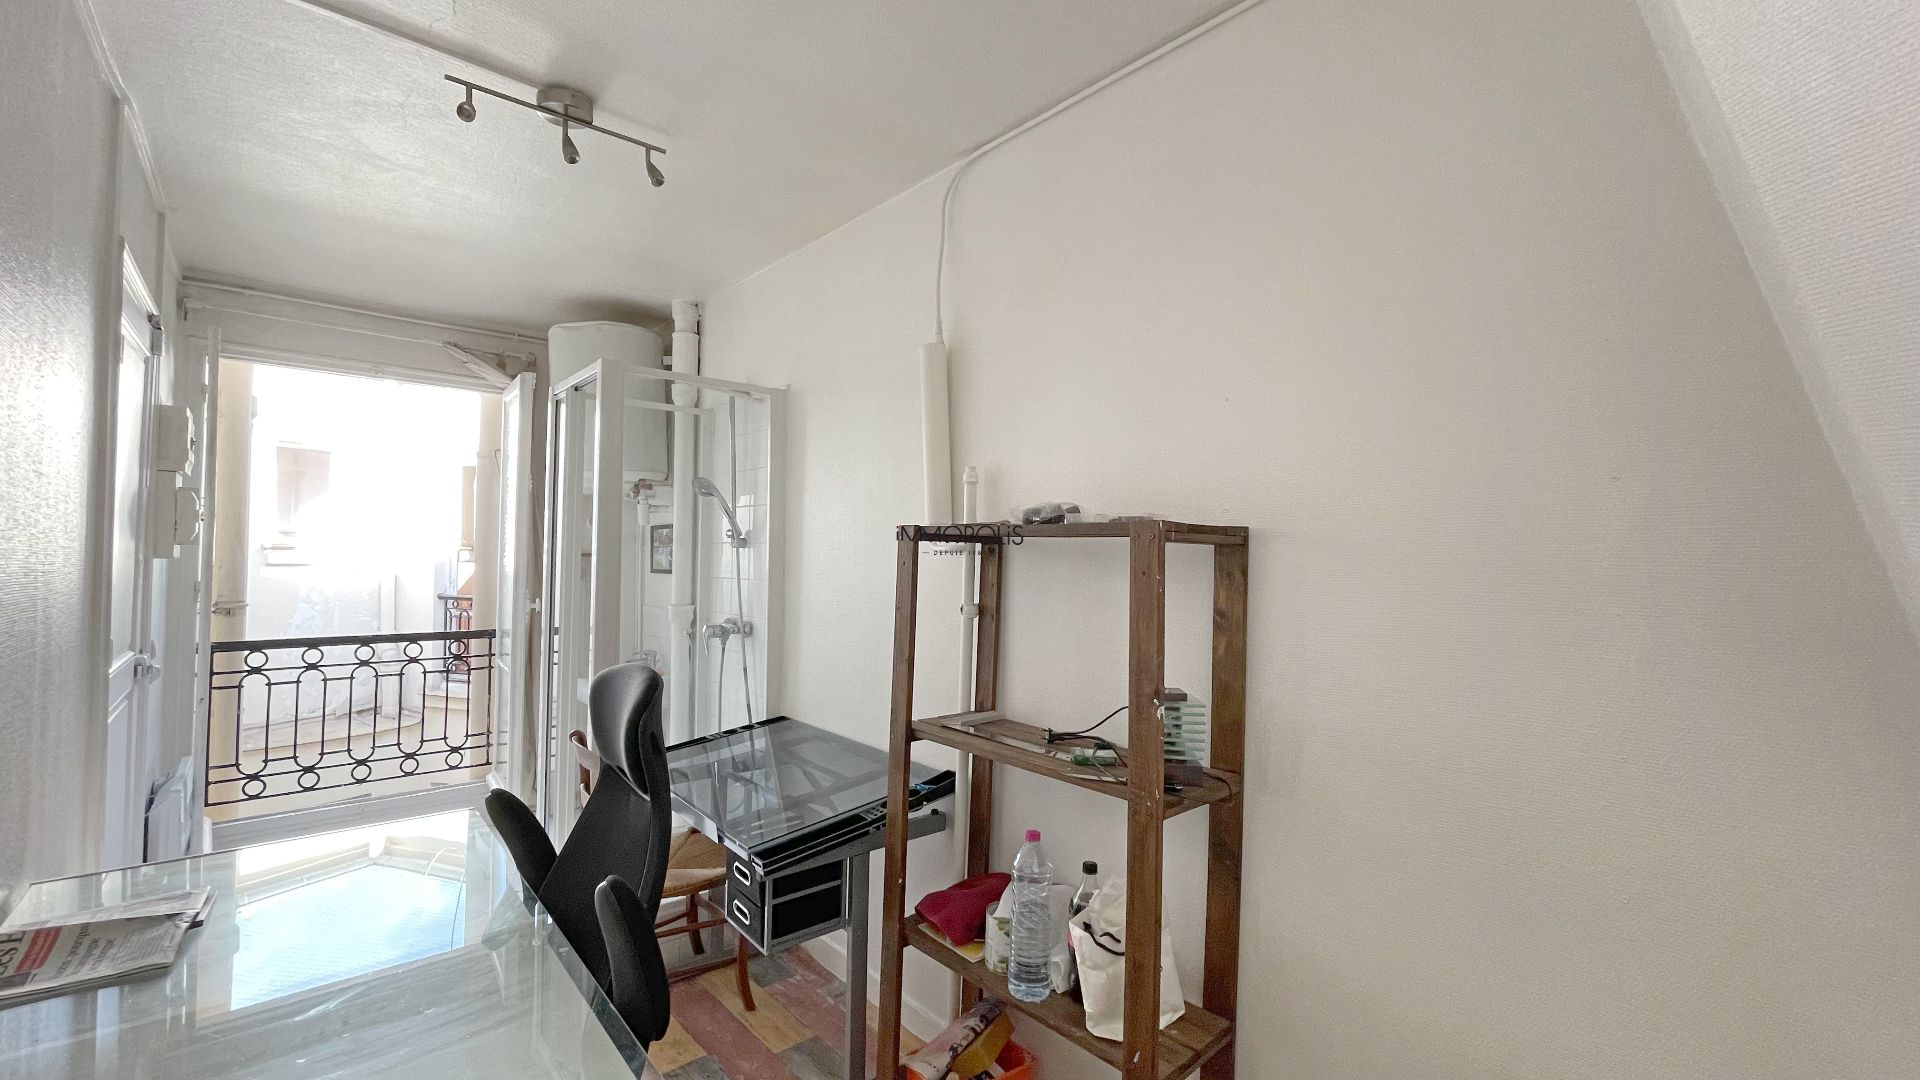 Paris 16, OECD District / Bois de Boulogne (Sector 2 Lakes), Upload room on top floor with elevator of 8.60 m² on the ground and 21.72 m3 1